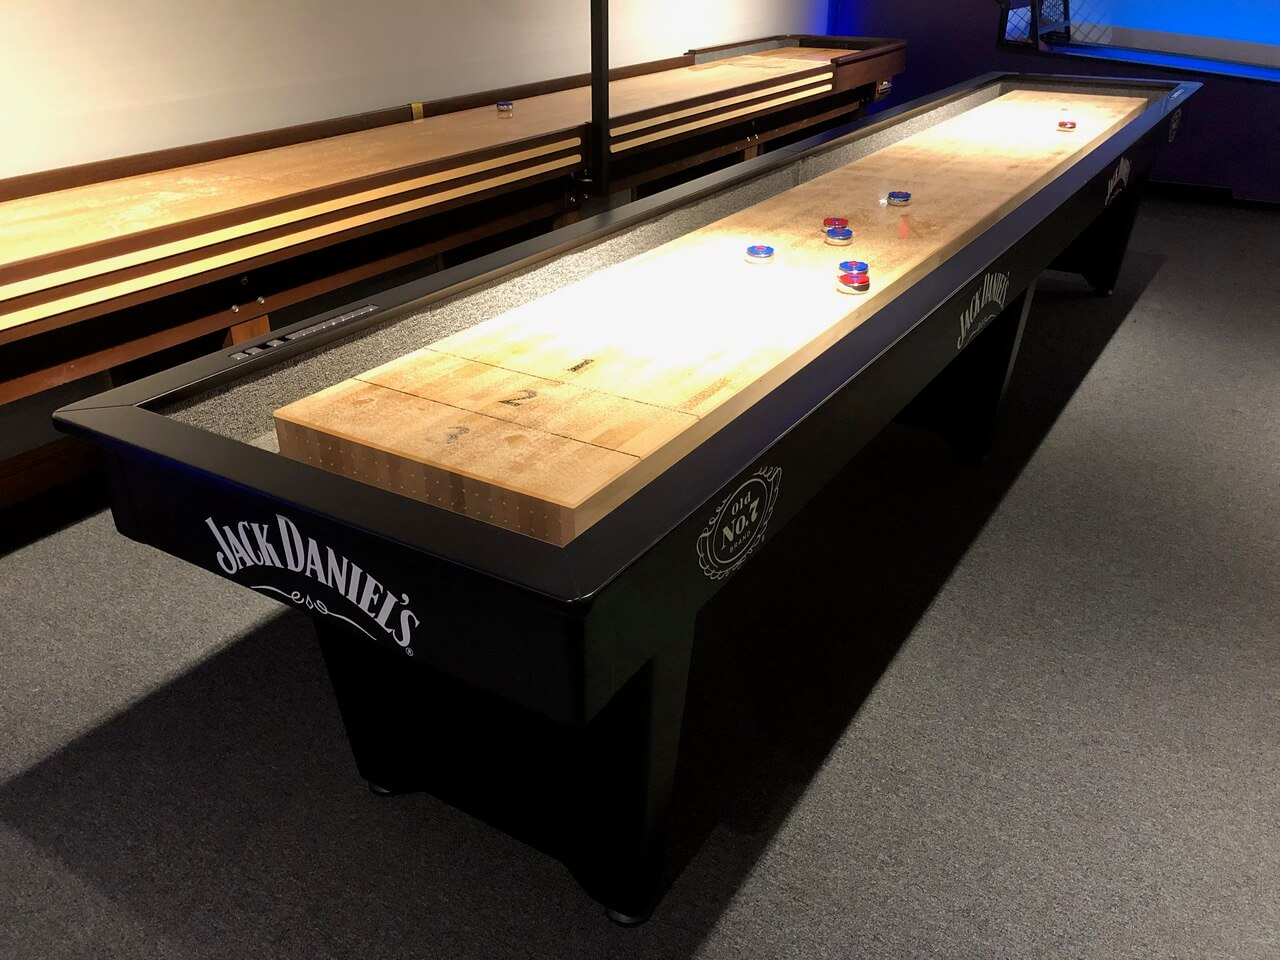 Jack Daniel's Shuffleboard - in Showroom